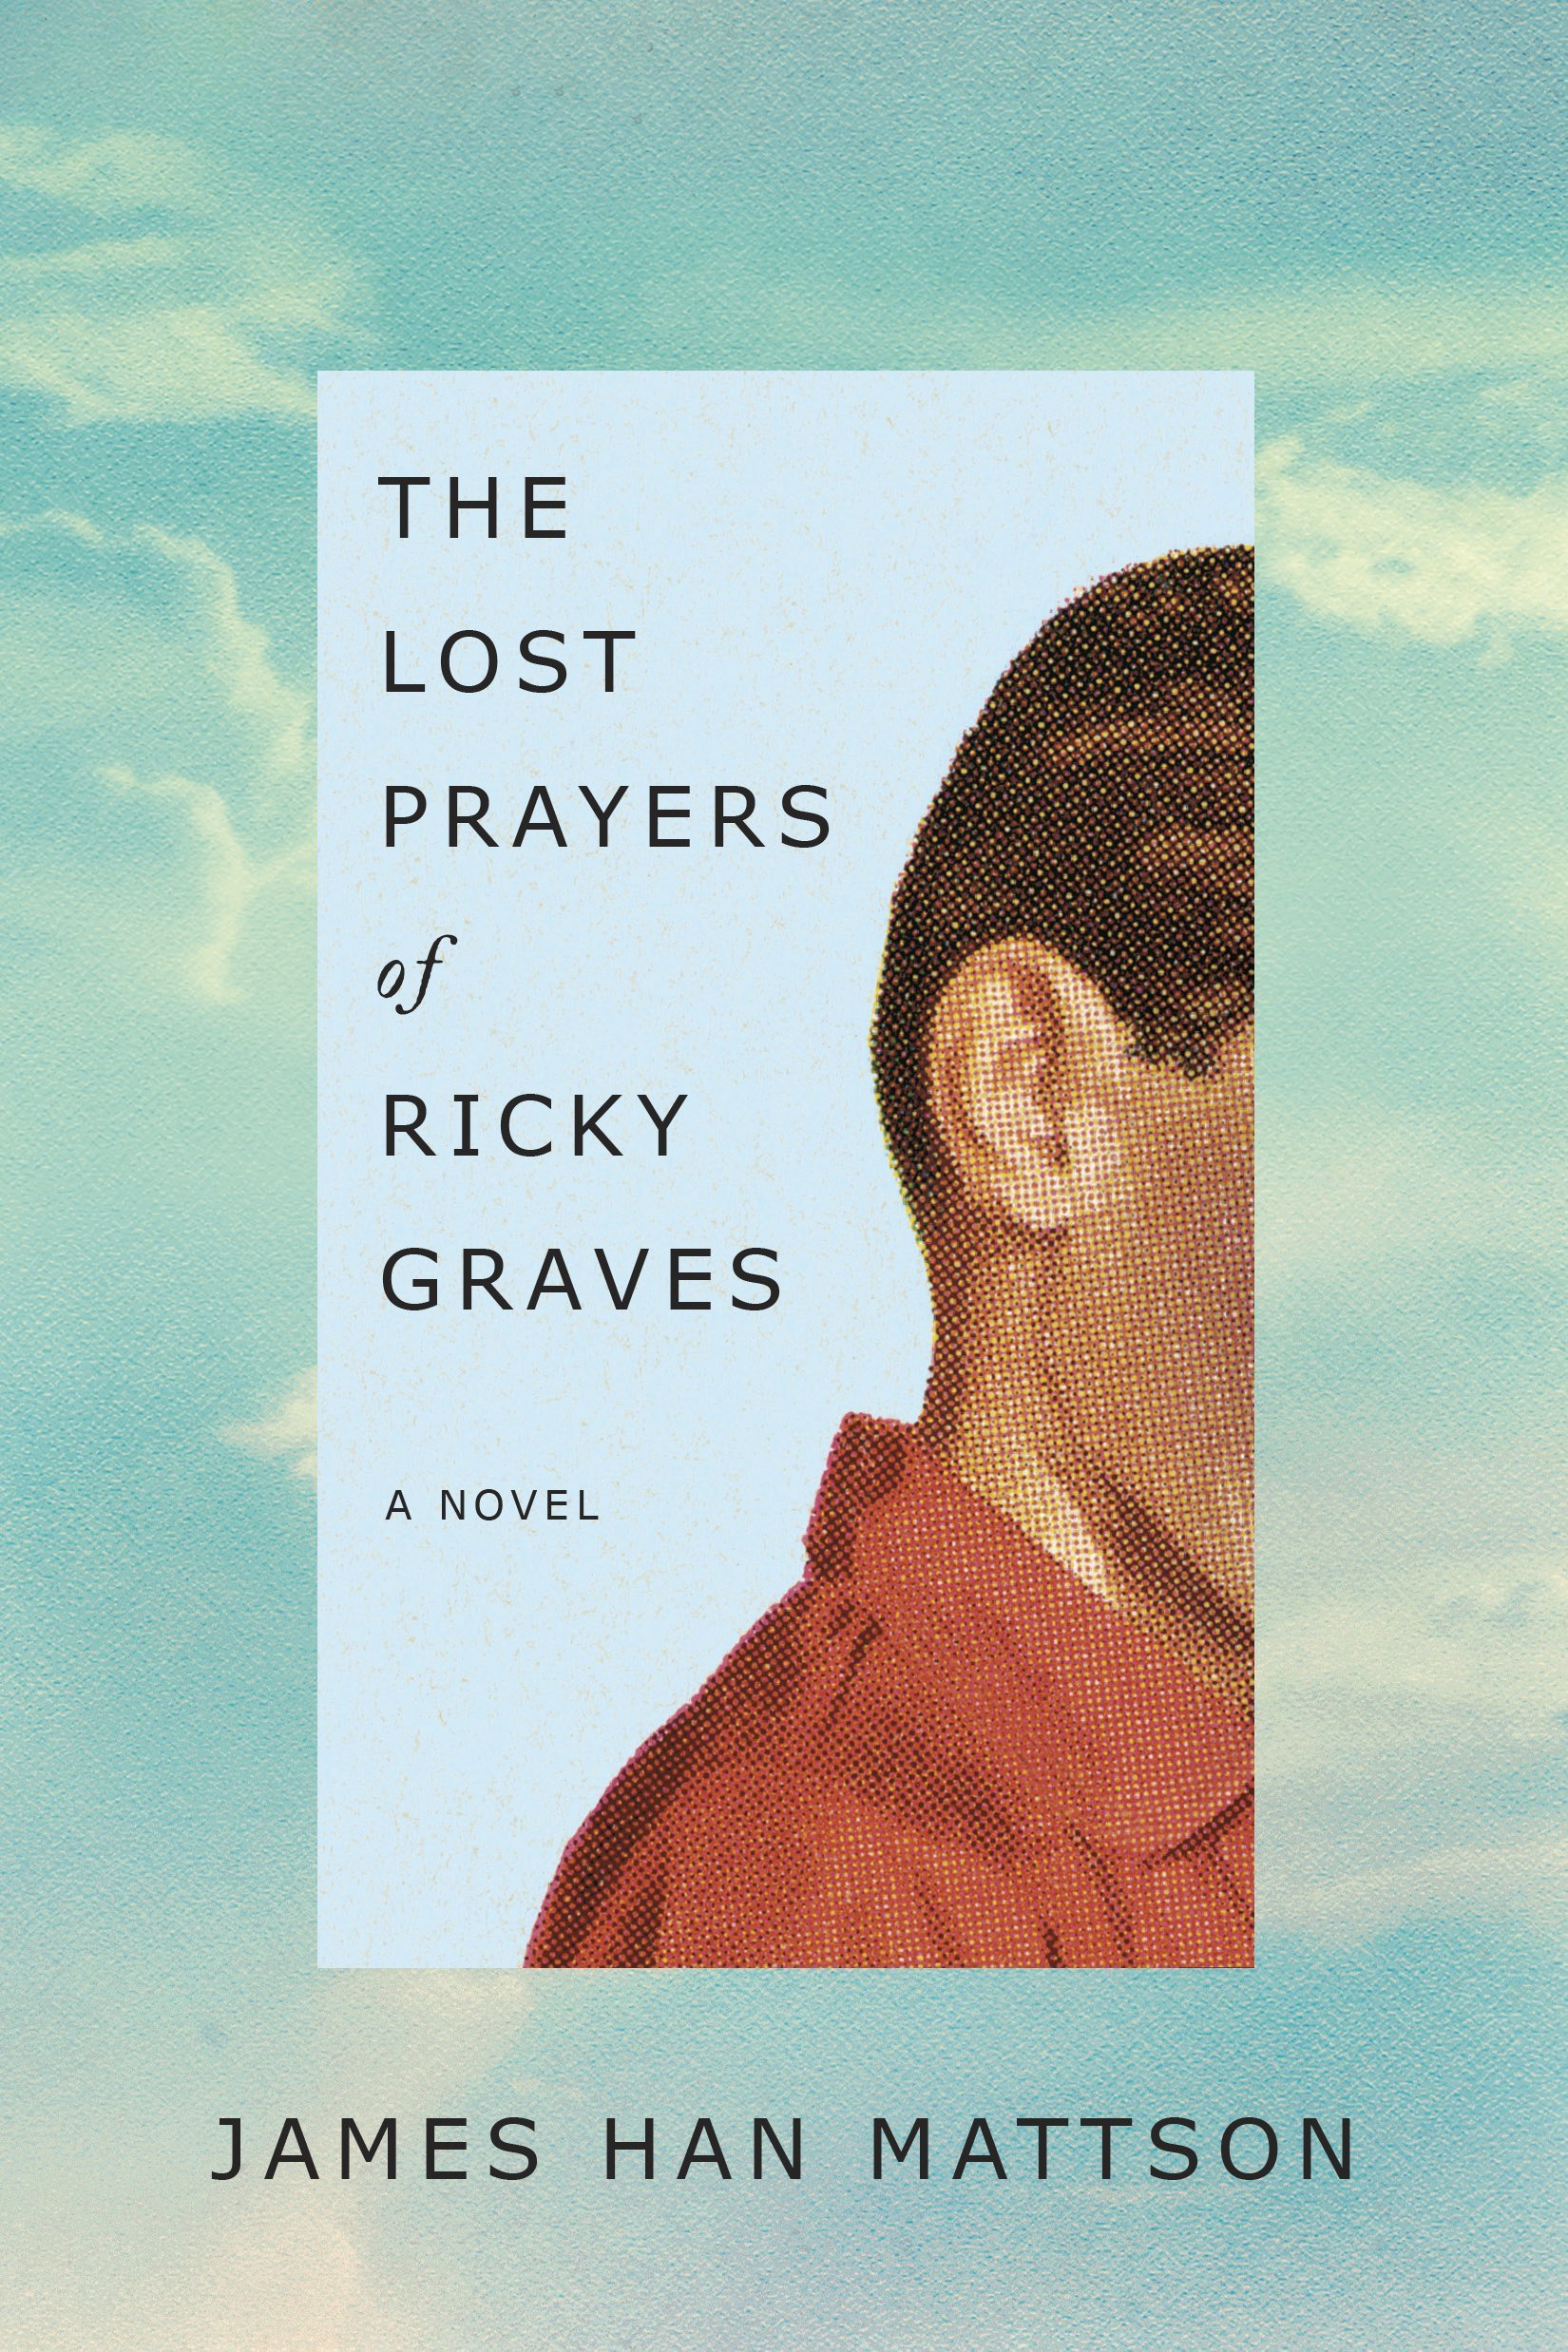 The Lost Prayers of Ricky Grave